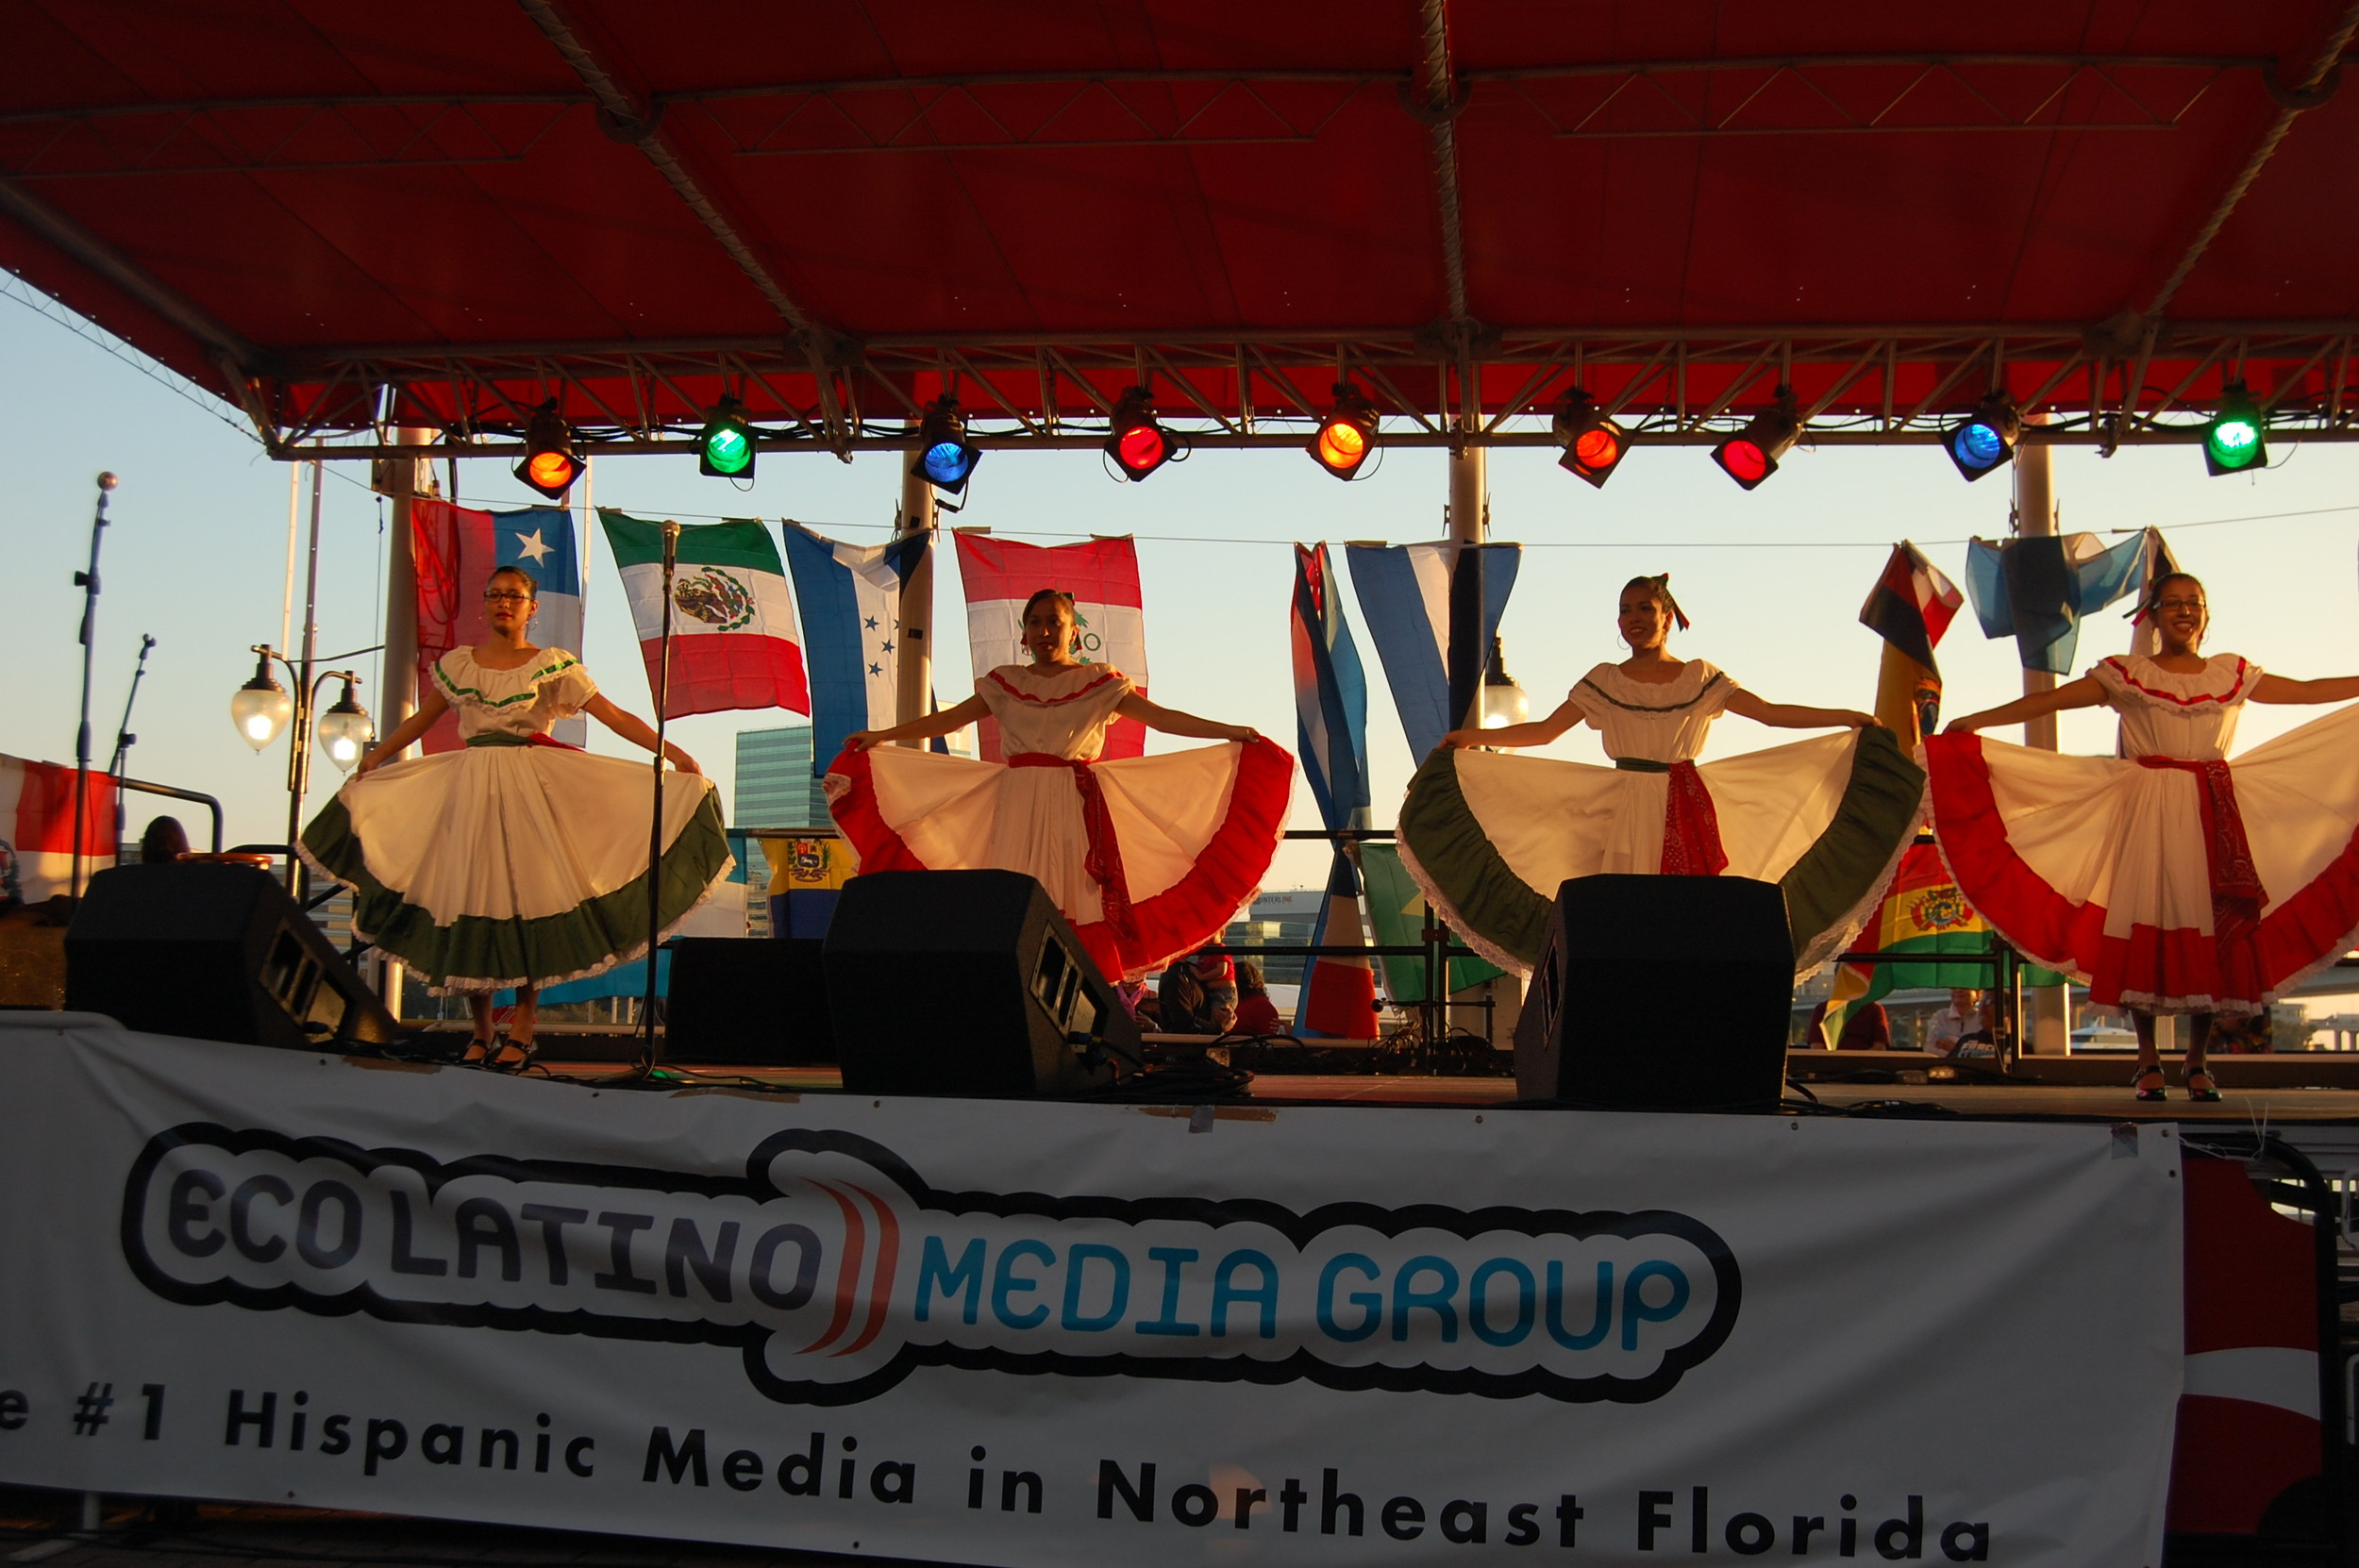 Mexican traditional dances at the Eco Latino